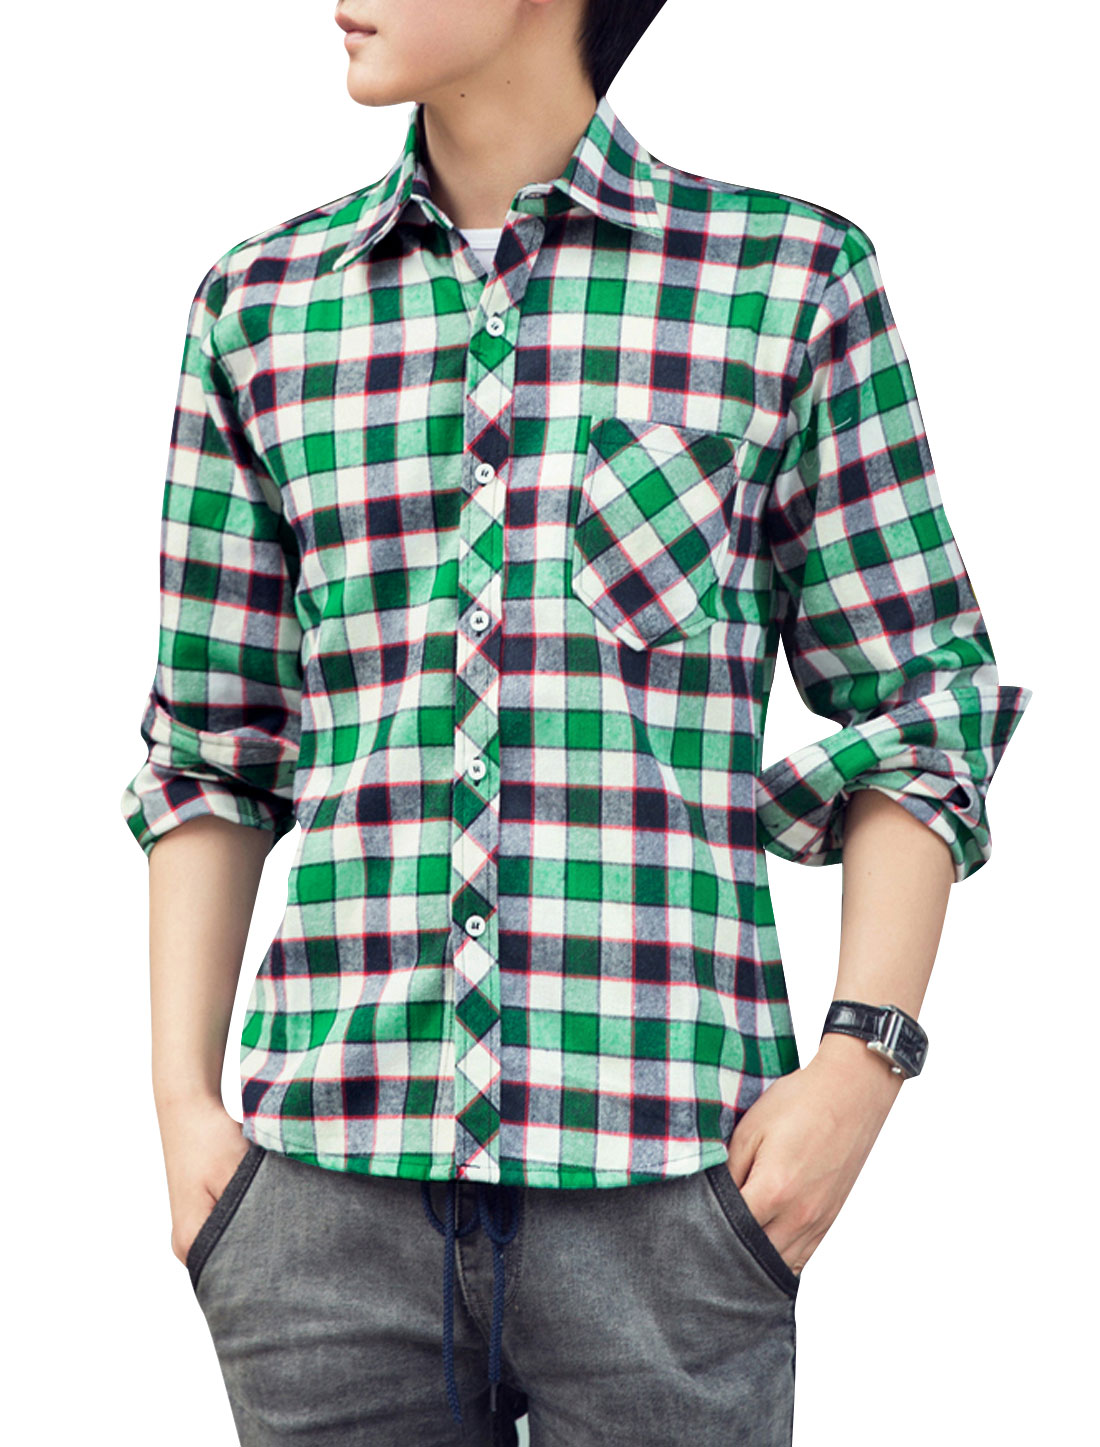 Men Point Collar All Over Plaids Long Sleeve Casual Shirt Green Navy Blue M